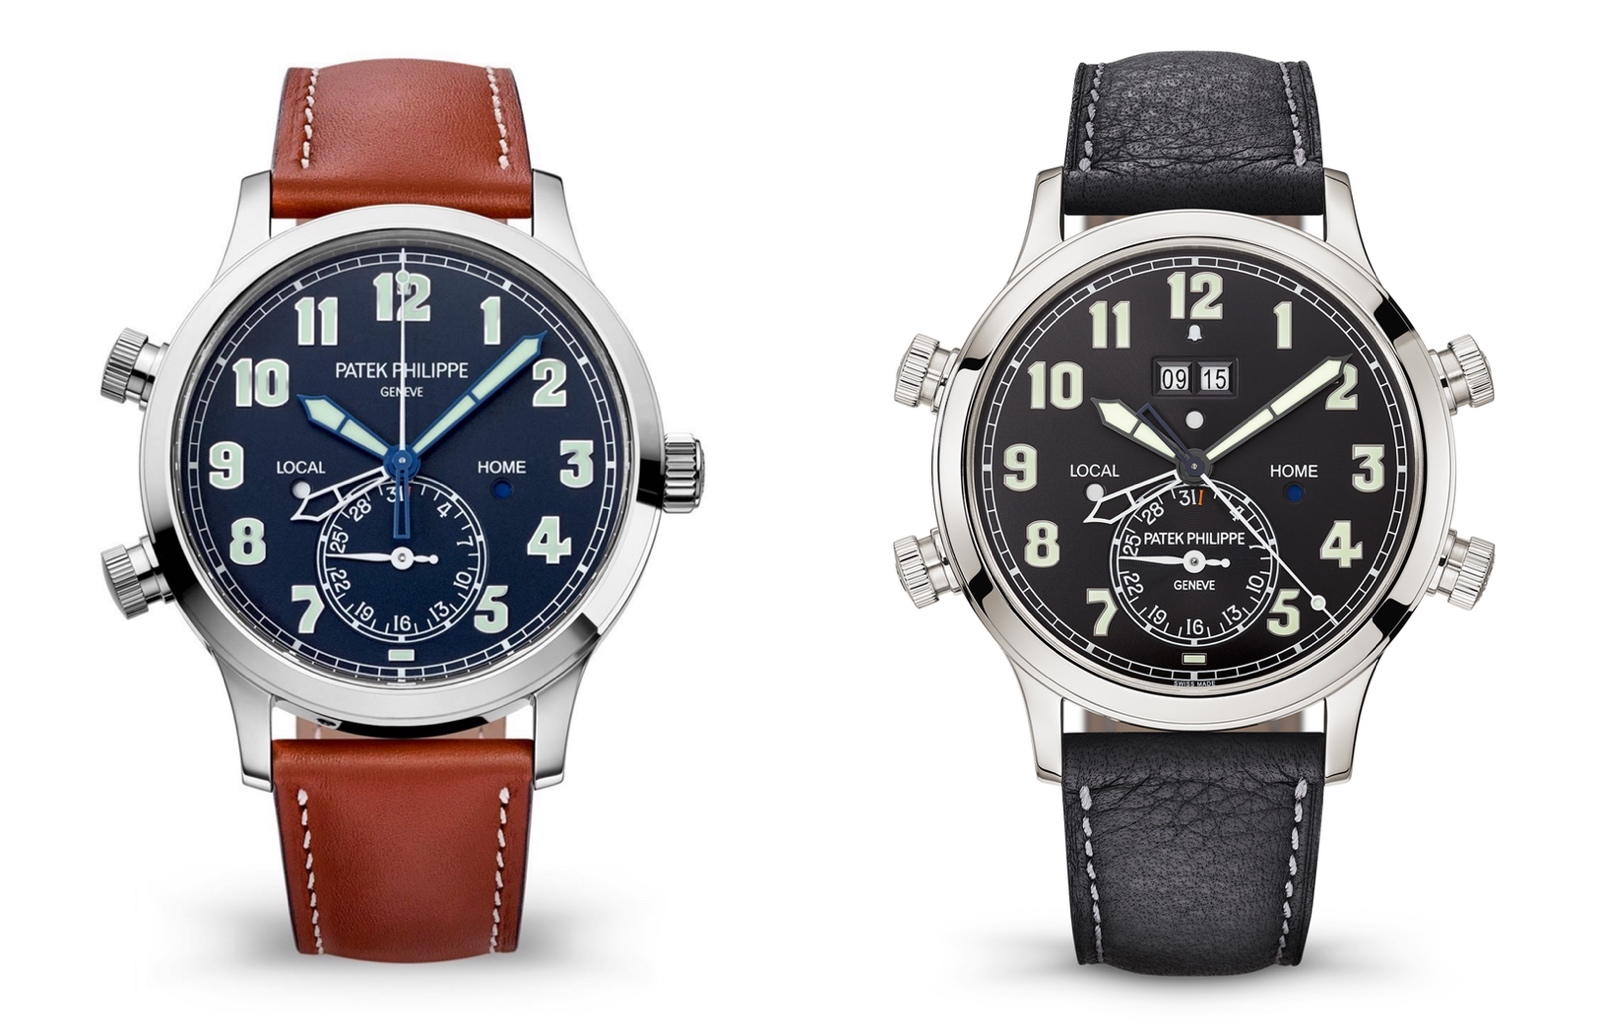 Patek Philippe 5520P Alarm Travel Time - 5524G vs 5520P